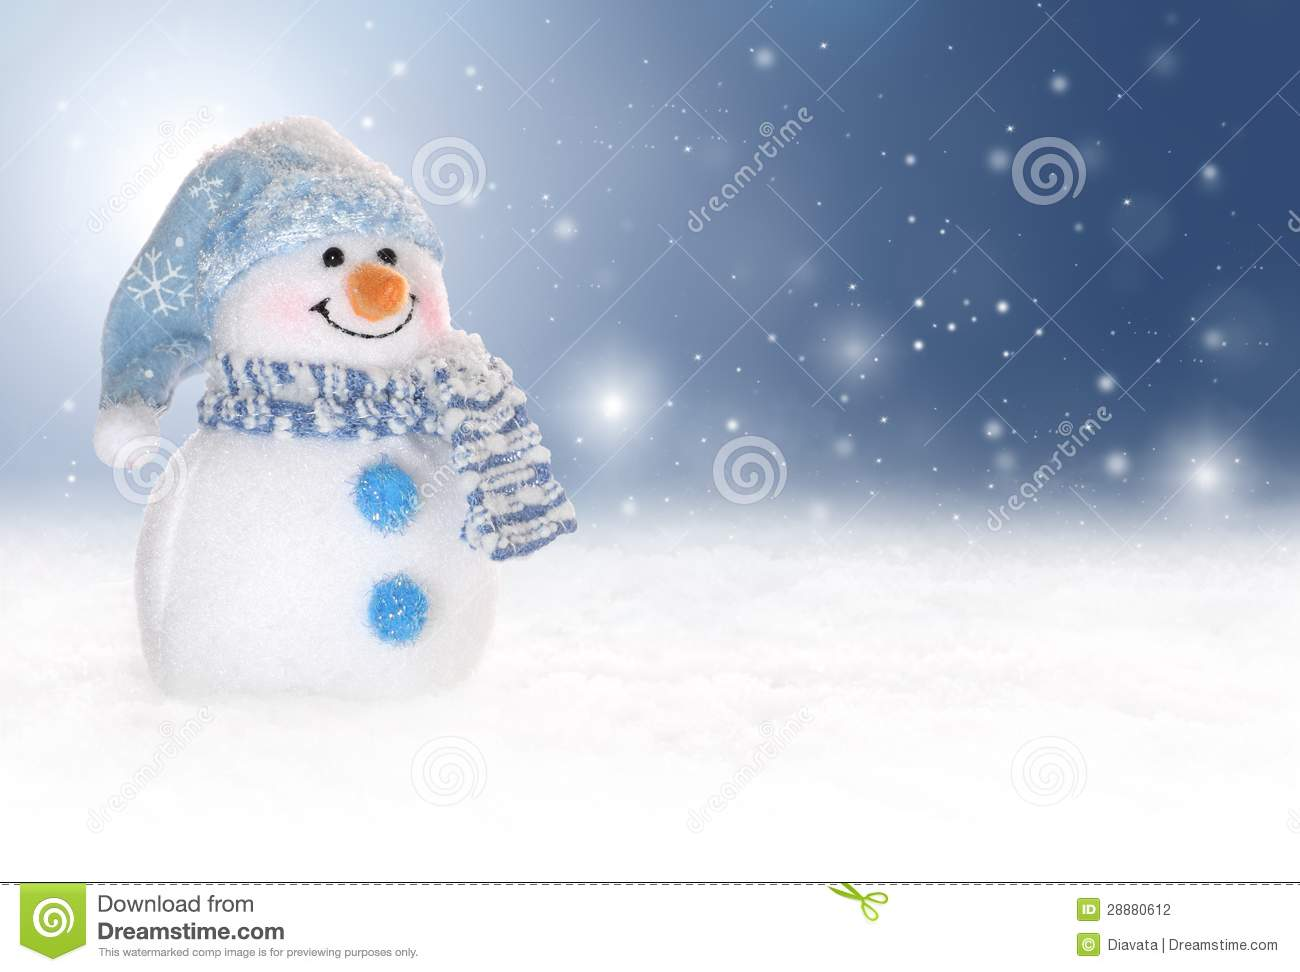 Cute Mittens Wallpaper Winter Background With A Snowman Snow And Snowflakes